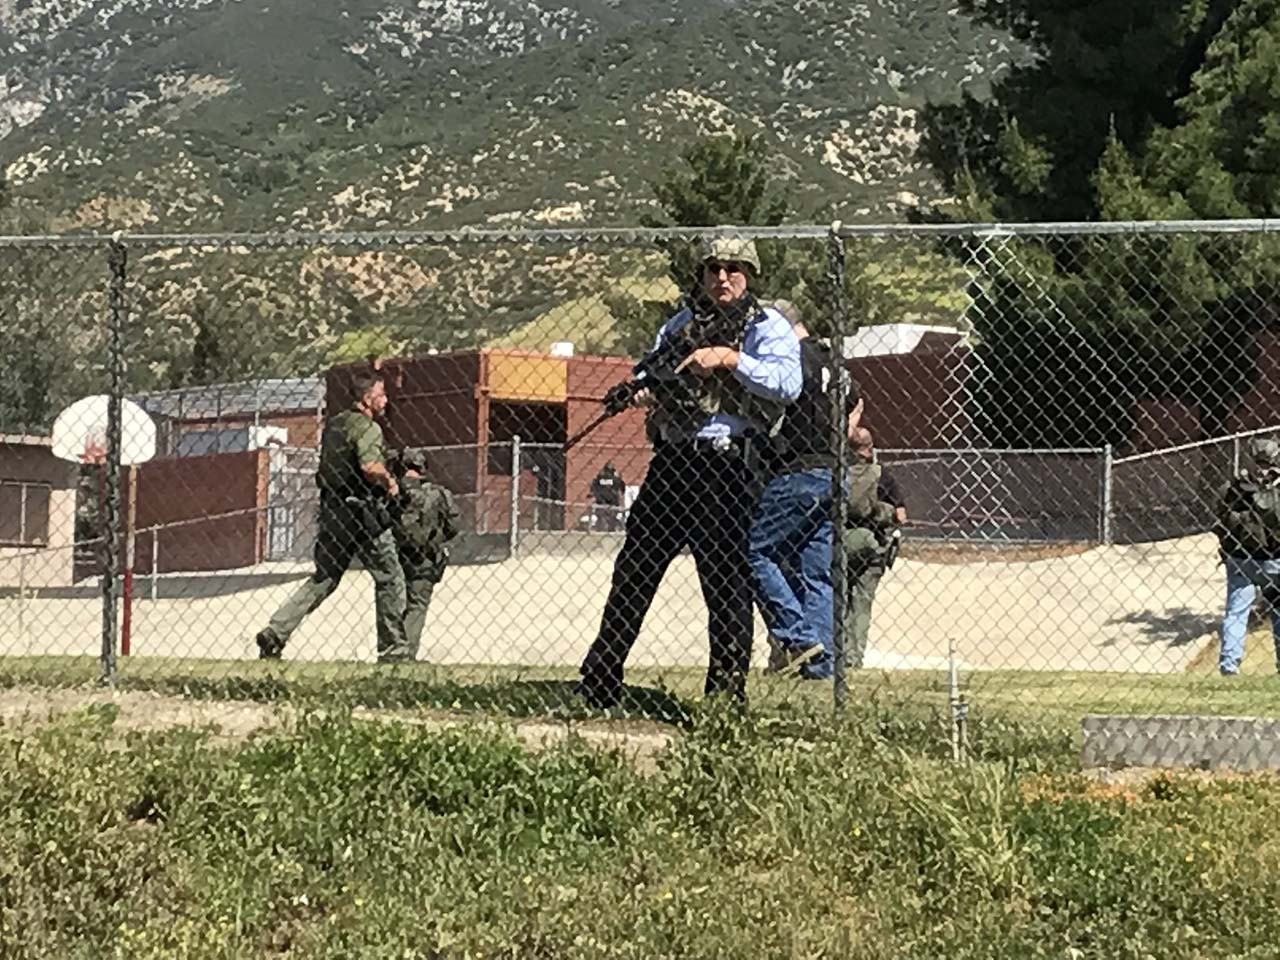 <div class='meta'><div class='origin-logo' data-origin='none'></div><span class='caption-text' data-credit='Photo/Rick Sforza with Southern California News Group'>Police lined the perimeter of North Park elementary following a shooting inside a classroom.</span></div>